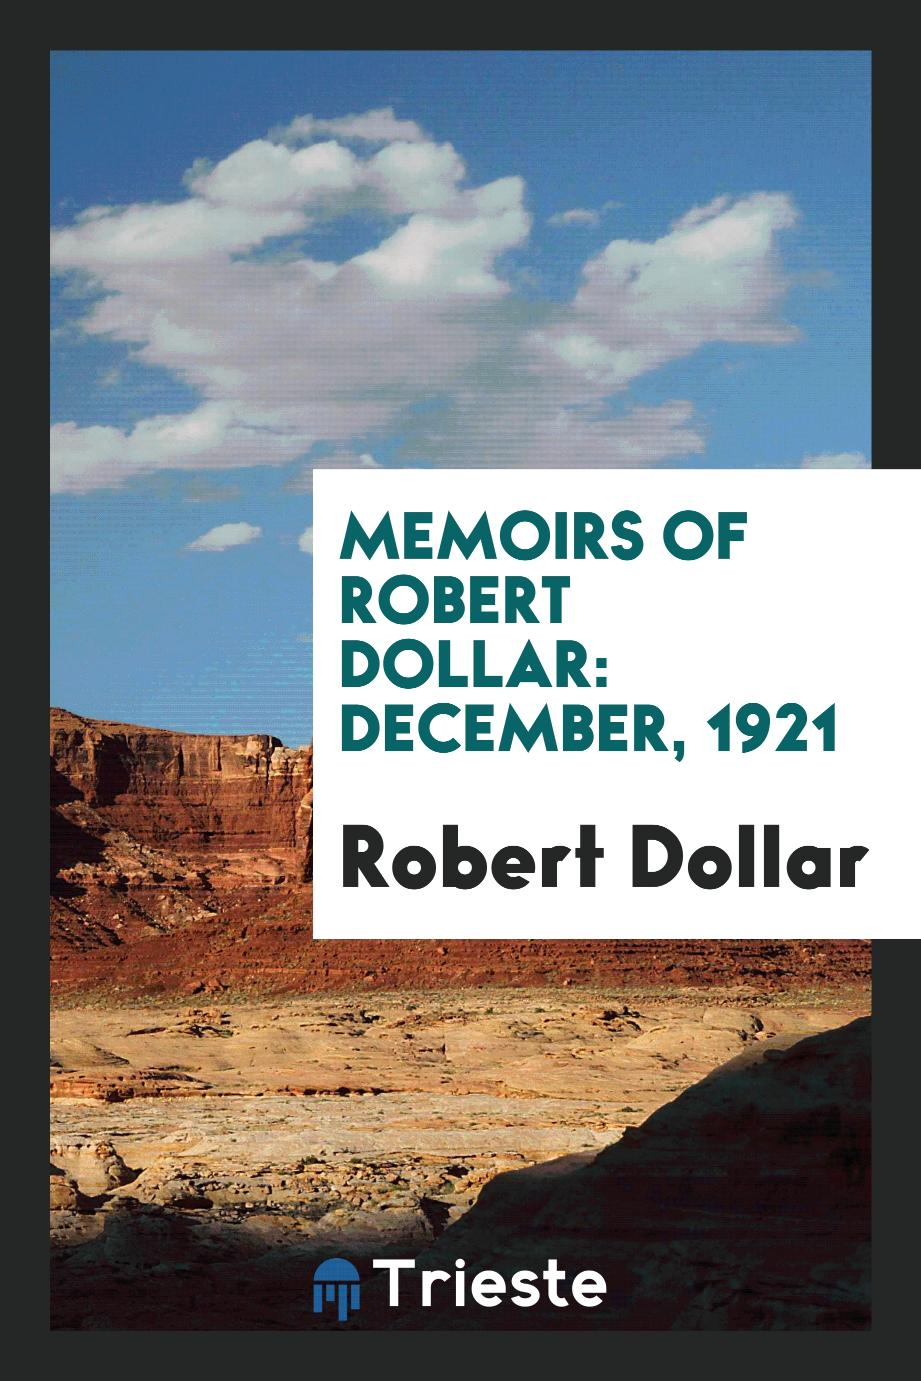 Memoirs of Robert Dollar: December, 1921